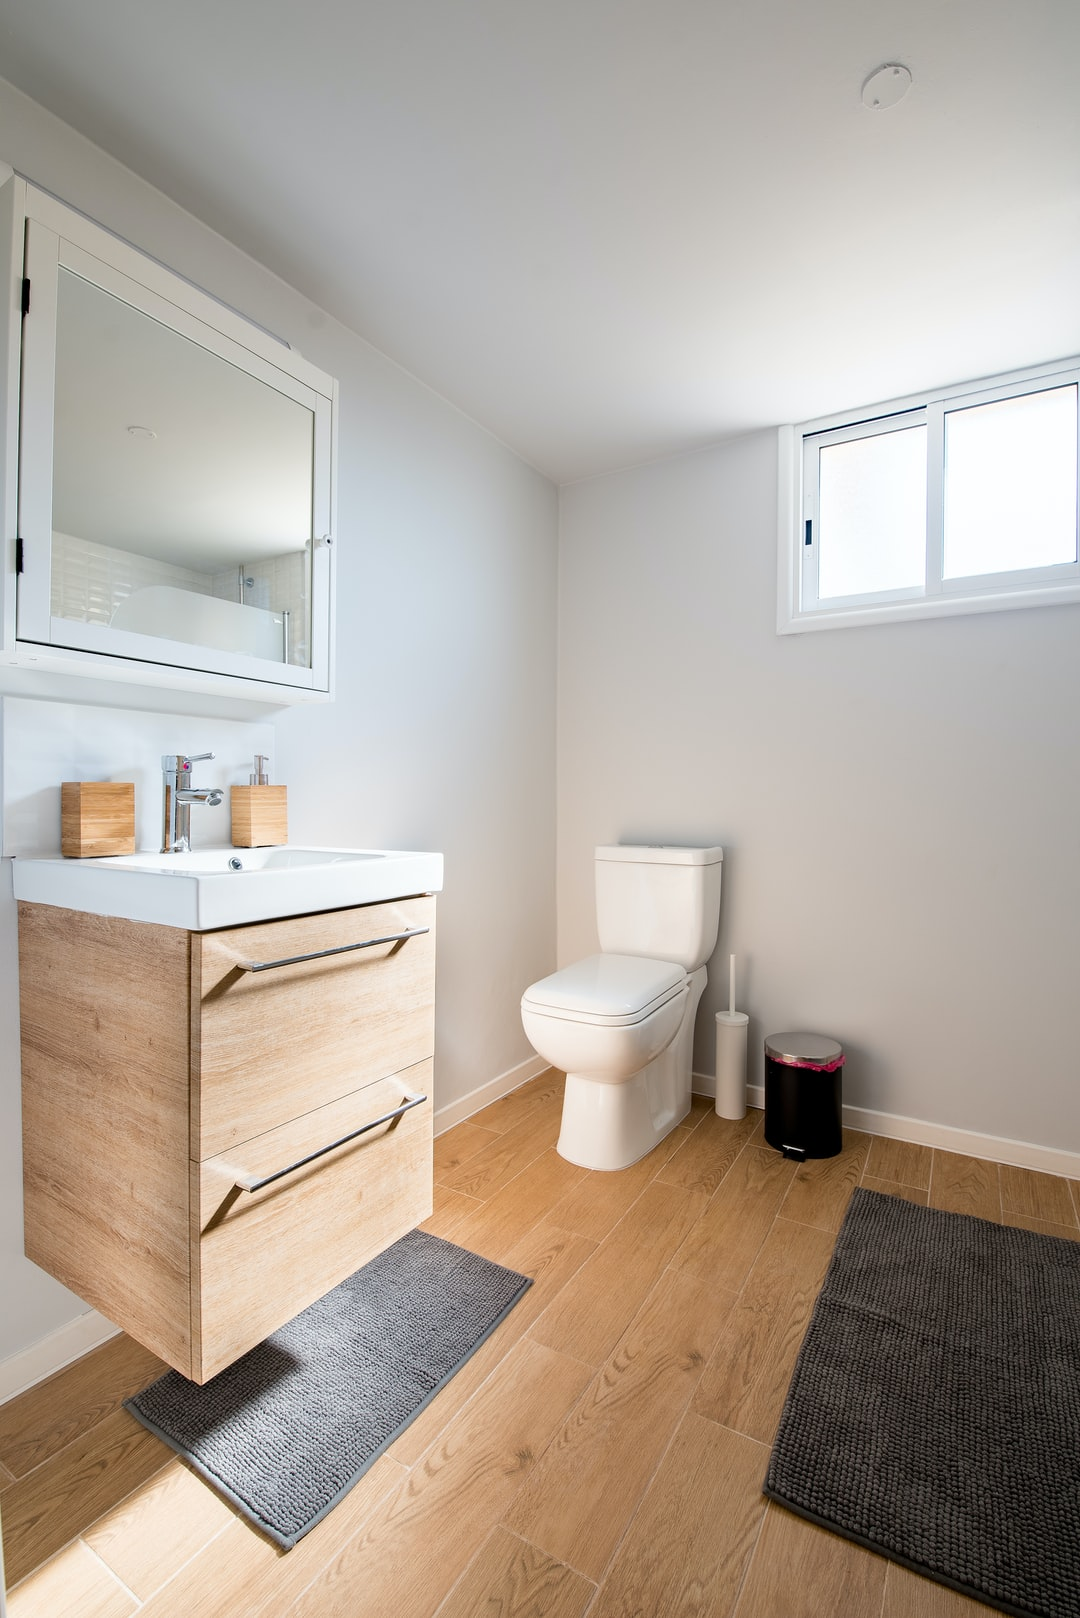 Our bathroom is minimal, woody and clean!